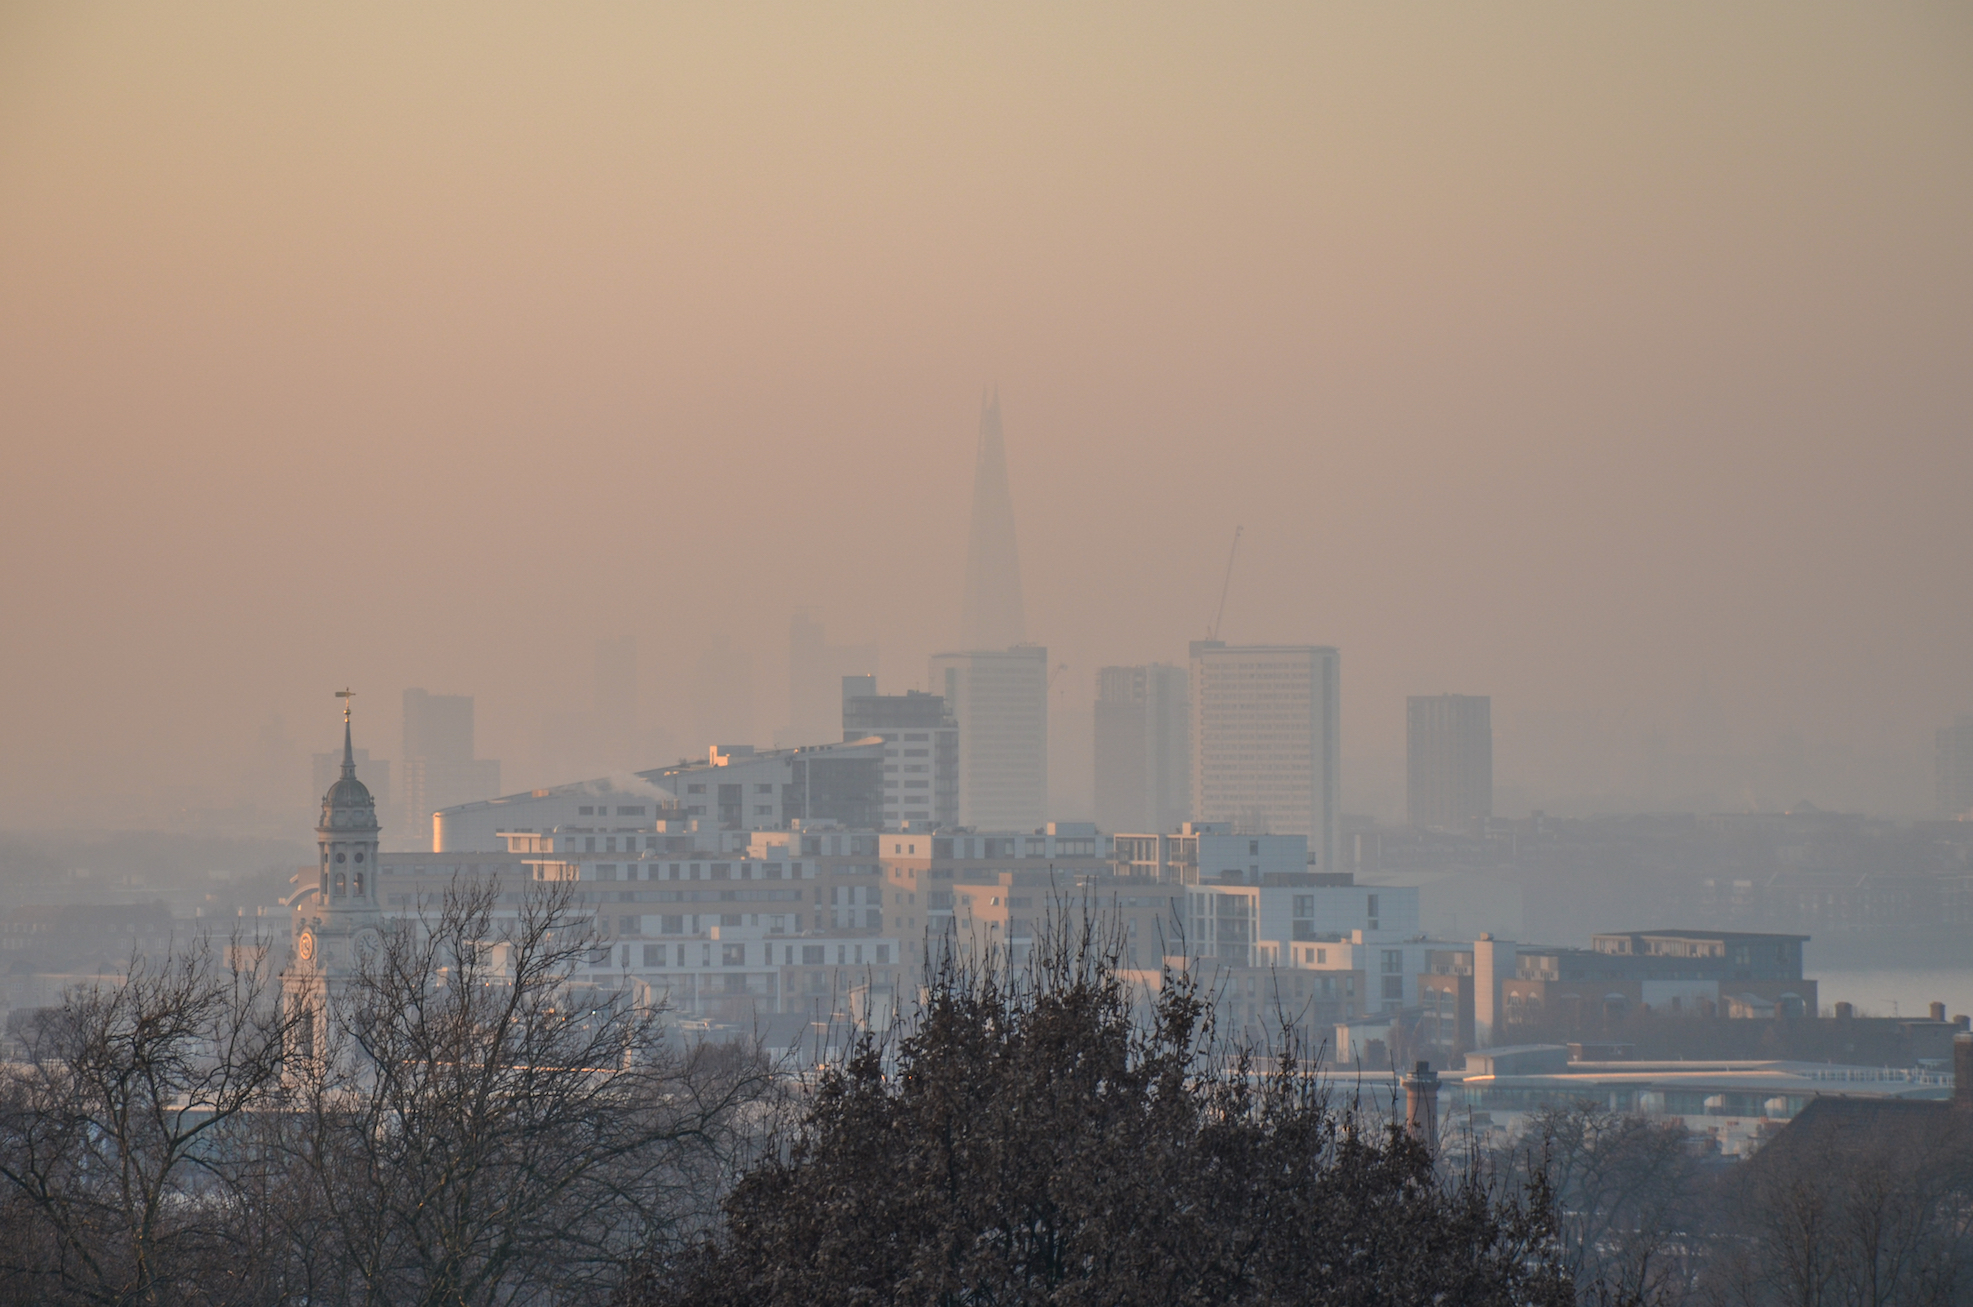 The UK, France, Germany, Hungary, Italy, and Romania will soon face the European Court of Justice over illegally high levels of air pollution.